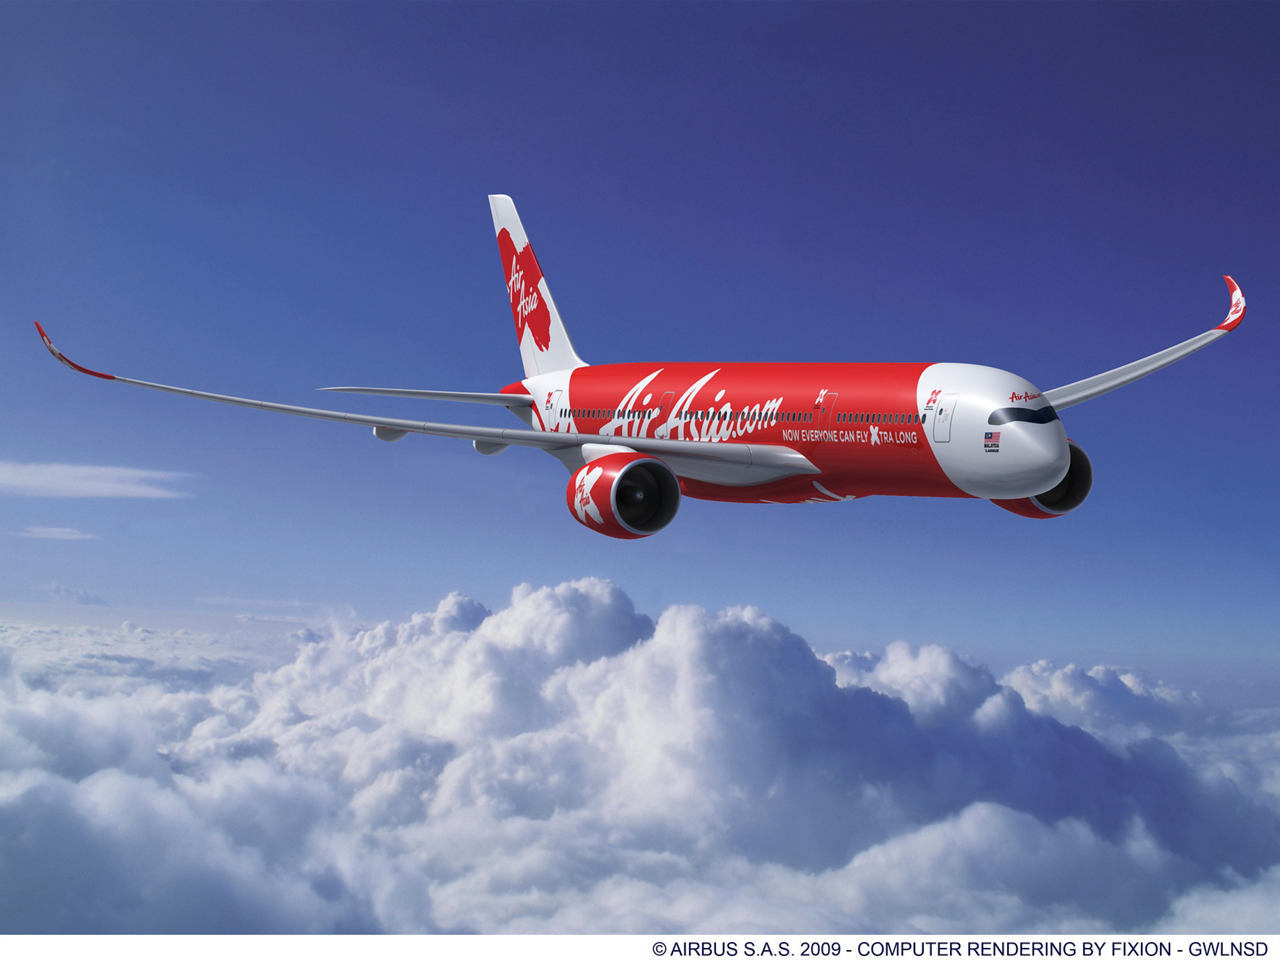 AirAsia X, the long haul low cost affiliate of Malaysia's AirAsia Group, has placed a firm order with Airbus for 10 A350 XWB aircraft.